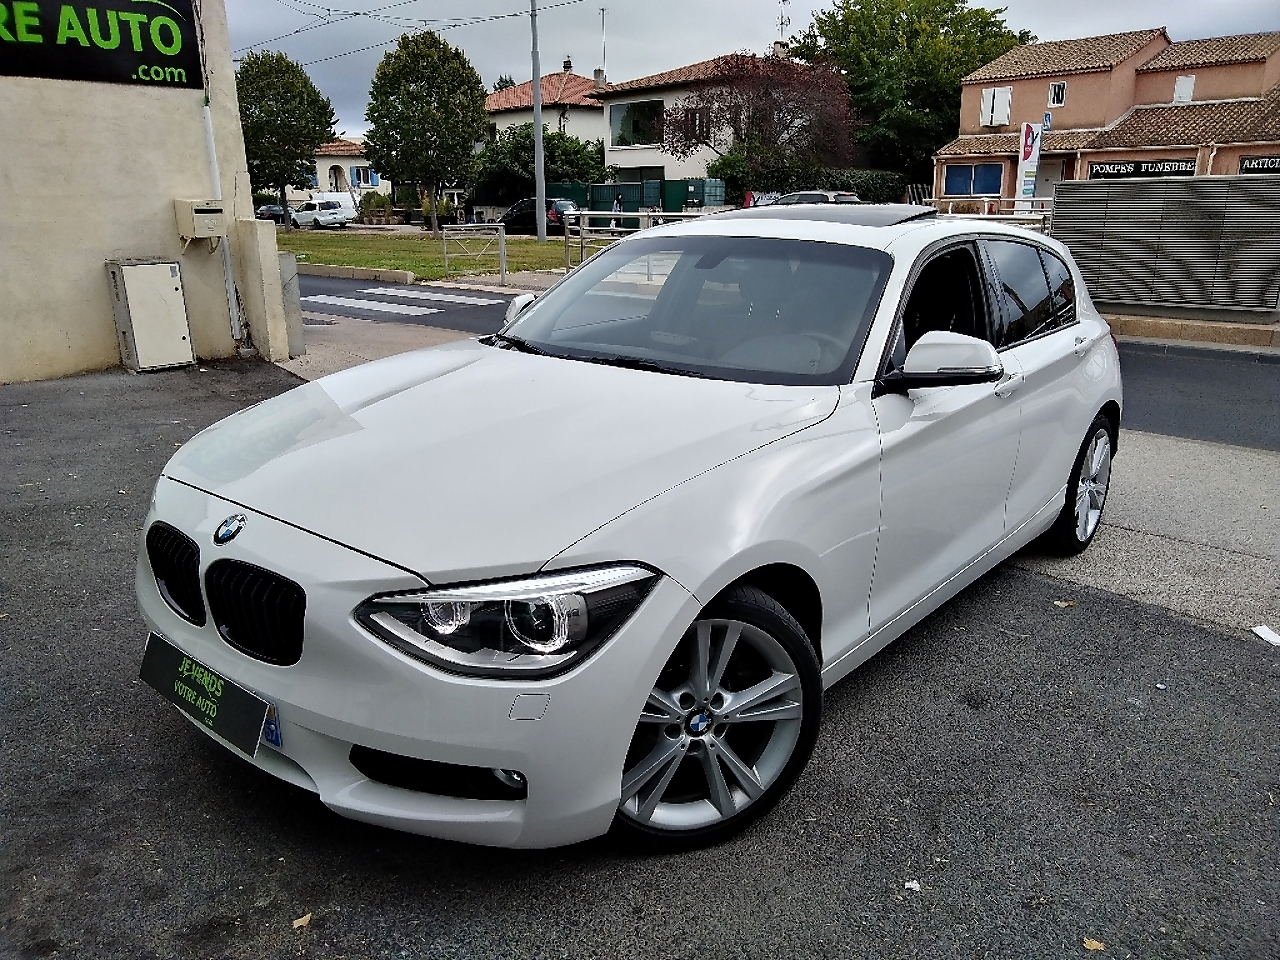 voiture bmw s rie 1 120d 184ch pack m sport 5p to occasion diesel 2012 175000 km 13490. Black Bedroom Furniture Sets. Home Design Ideas